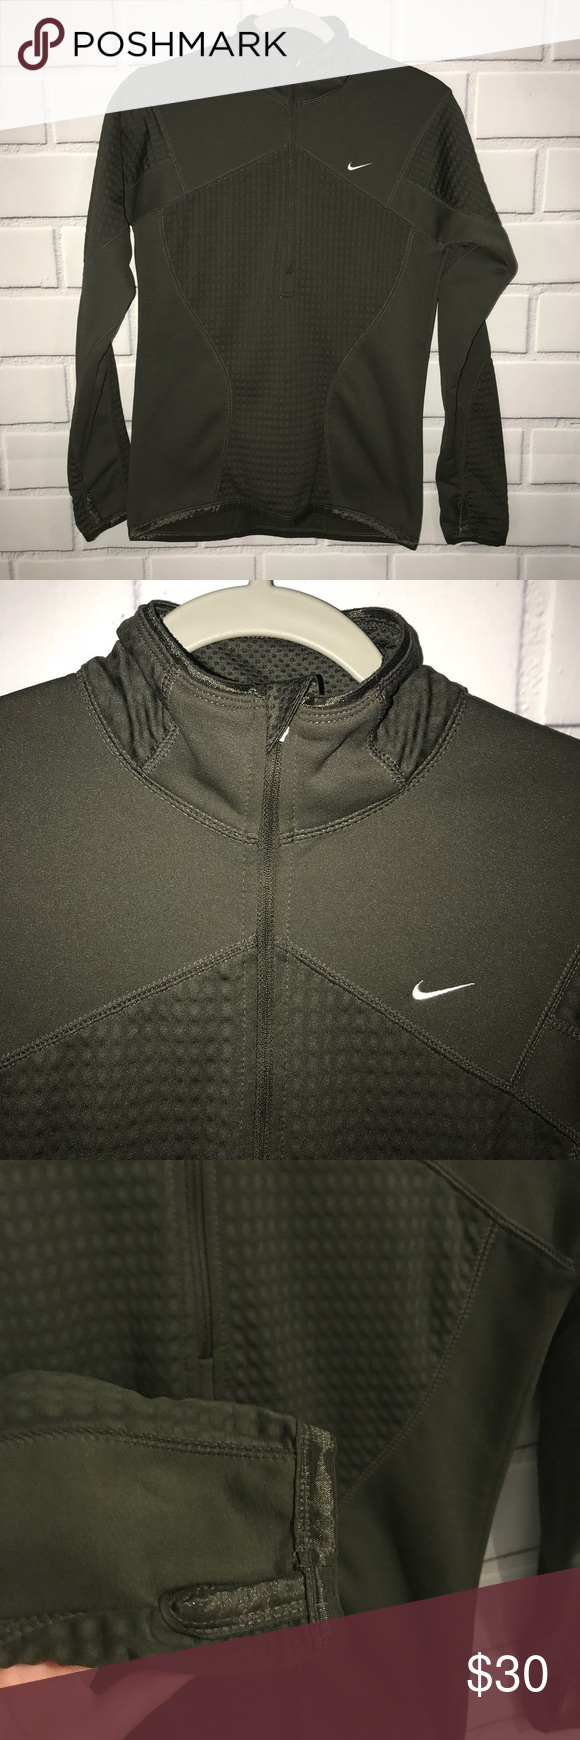 "Nike Therma Fit Womens Pullover Thumb Hole Olive Nike Therma Fit Womens Hoodie  Sweatshirt Pullover L S Thumb Hole Olive Green M Measures 18 1 2"" from  armpit ... 7d9f04608"